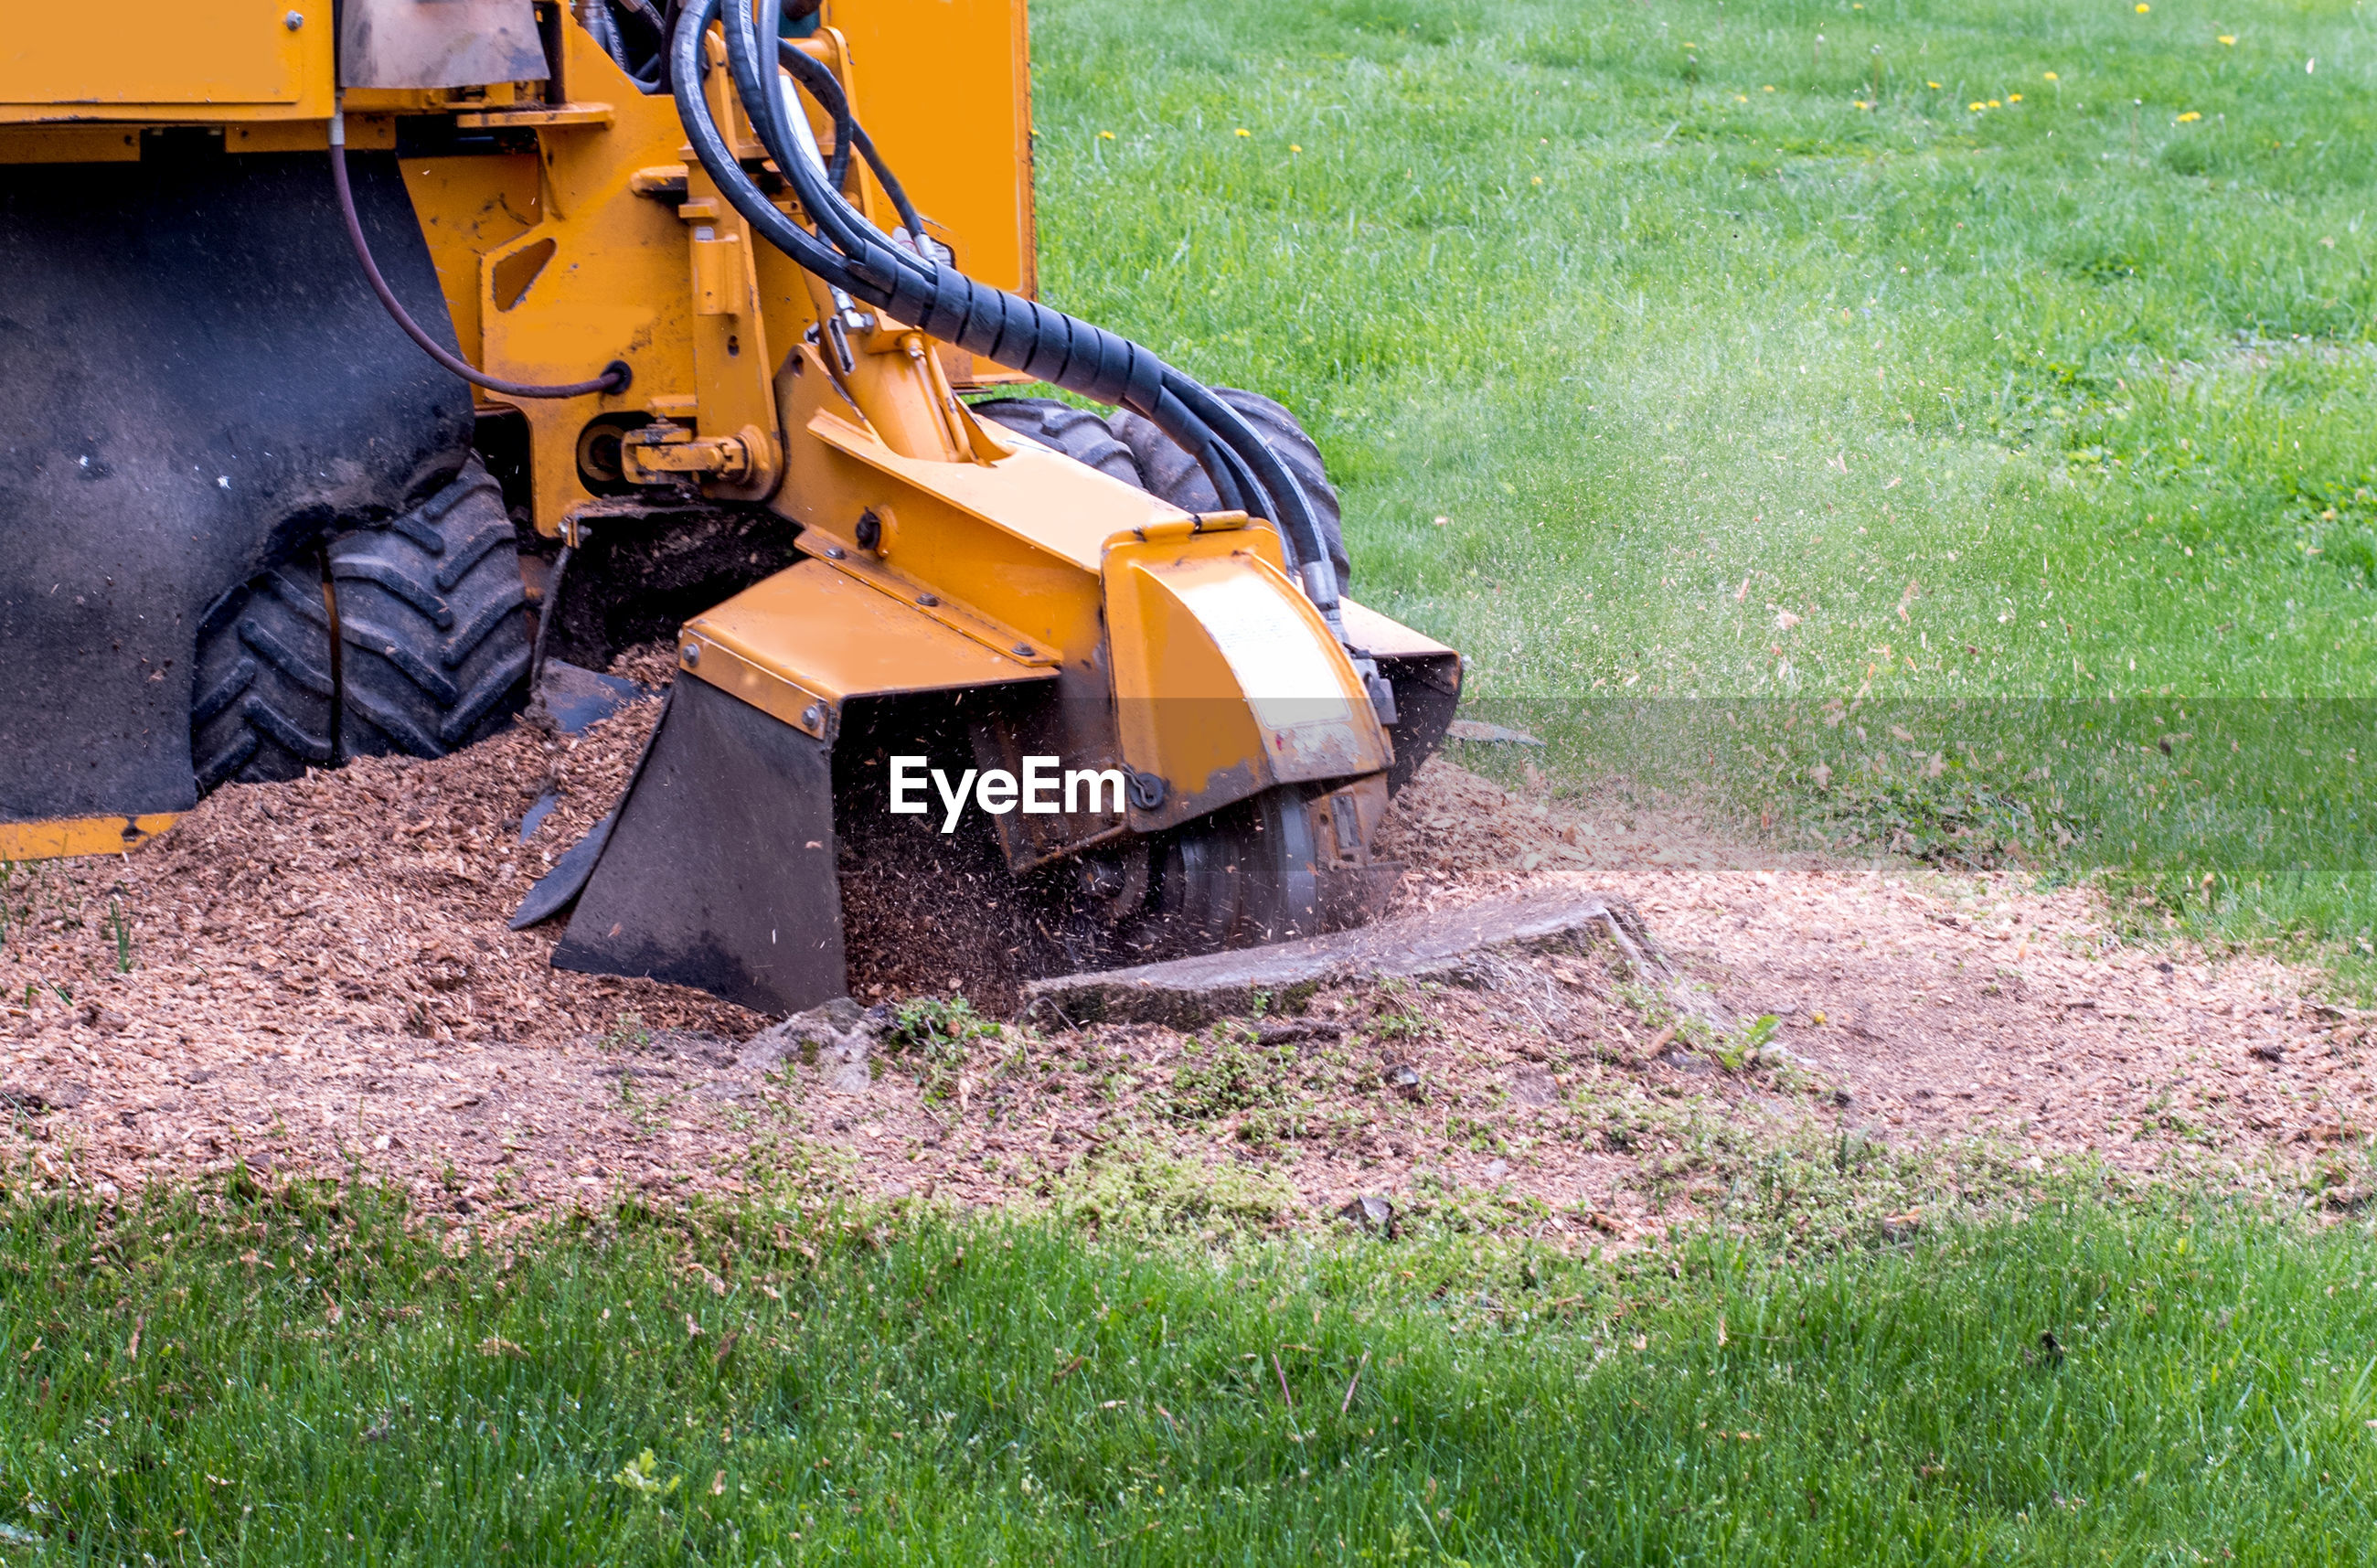 Close up of a stump grinder machine, grinding up a tree stump into saw dust and mulch